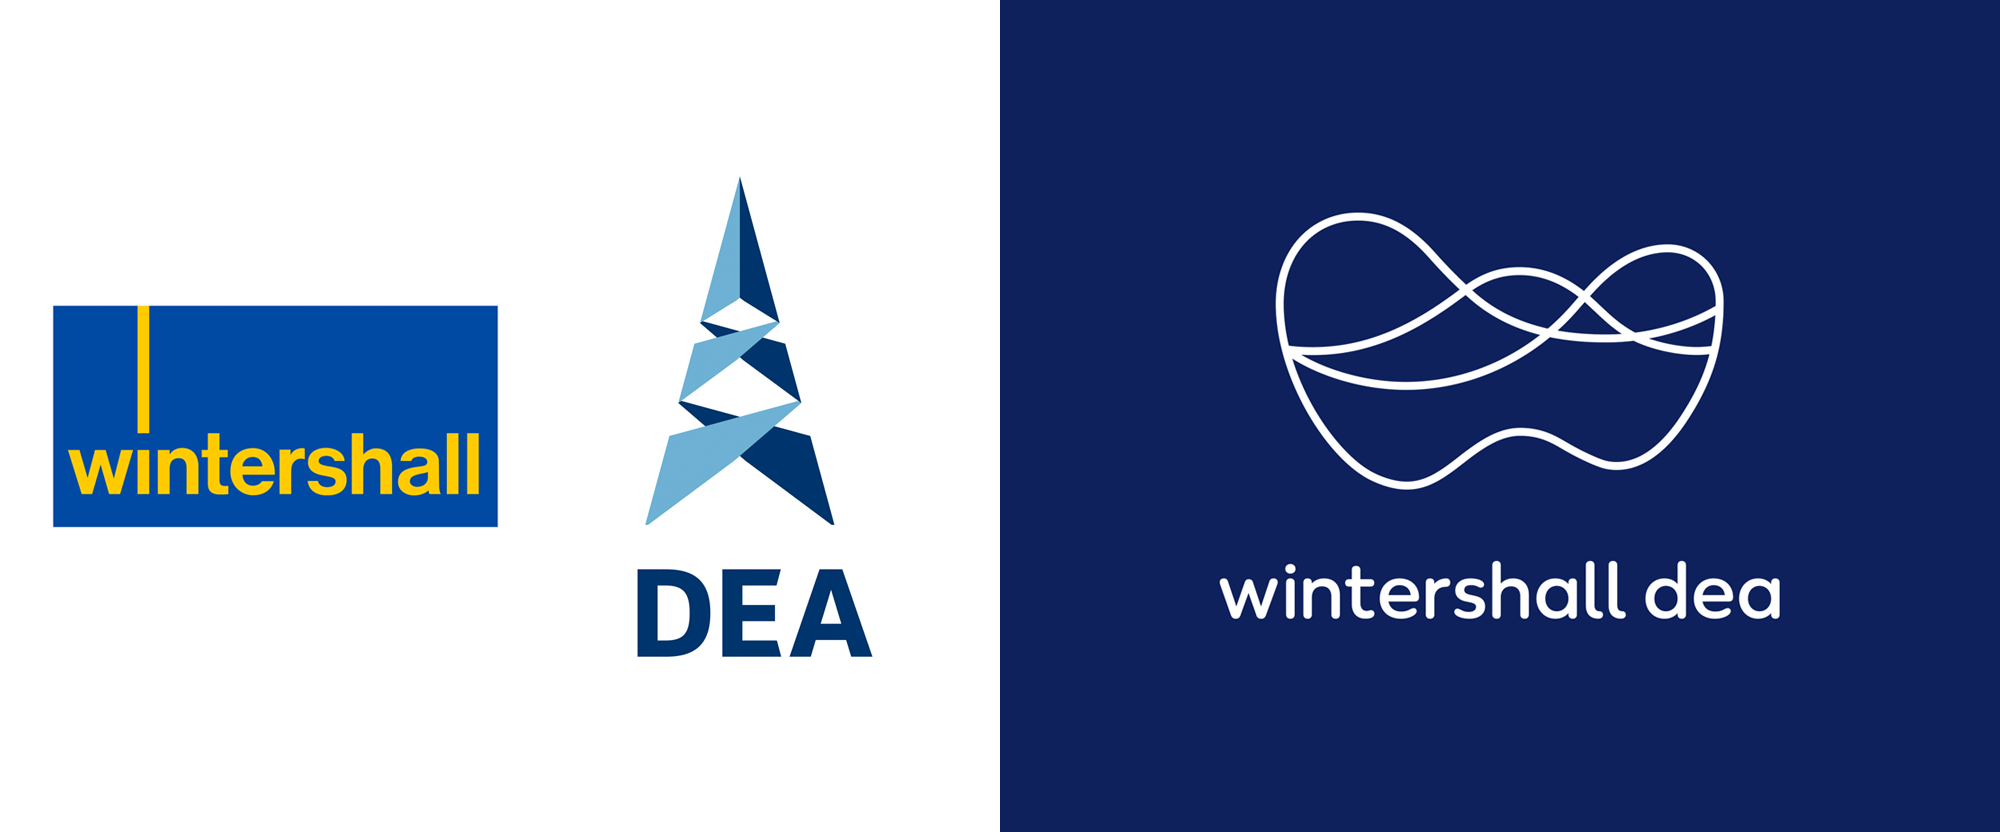 New Logo for Wintershall Dea by Jung von Matt